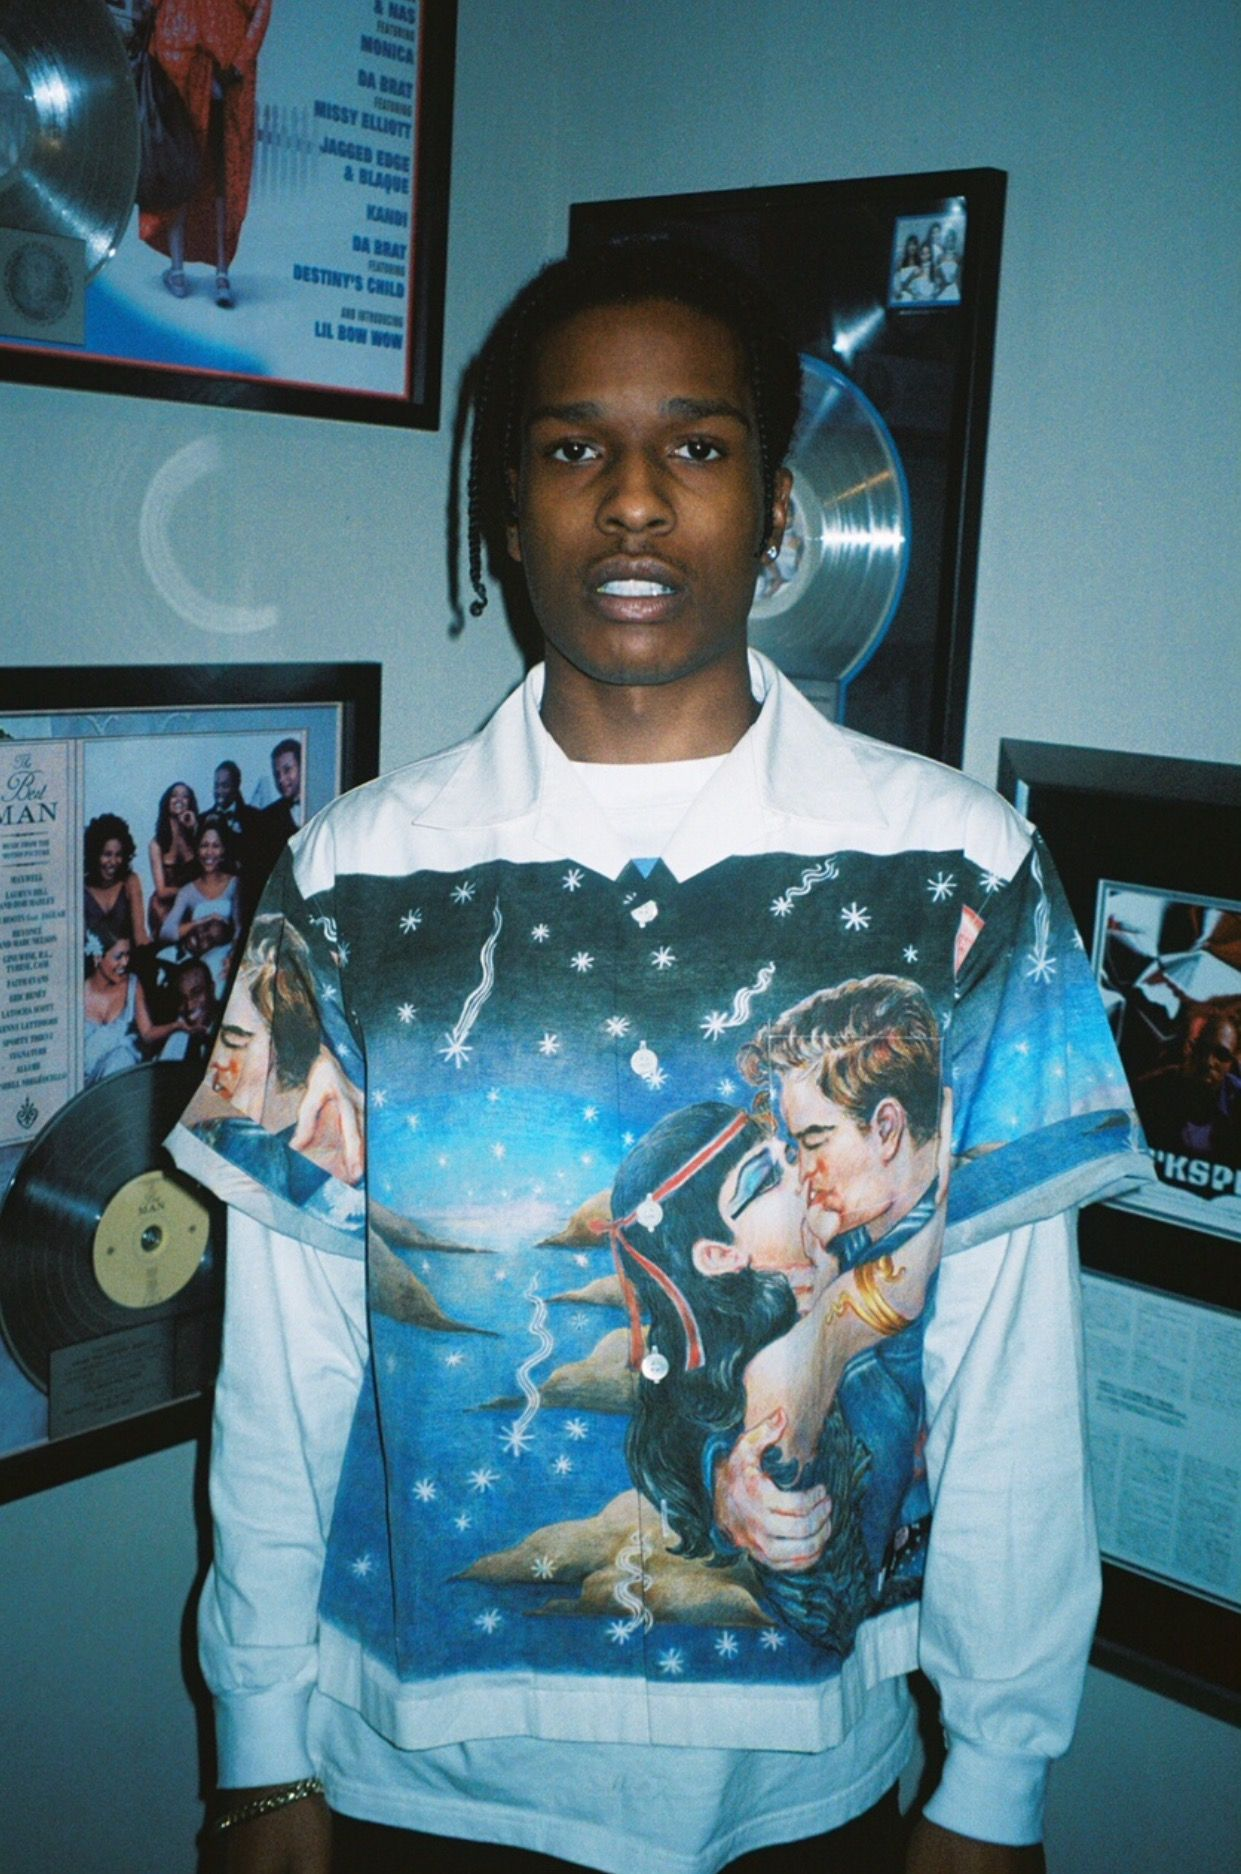 AAP ROCKY image by Ceola Johnson Pretty flacko, Rocky